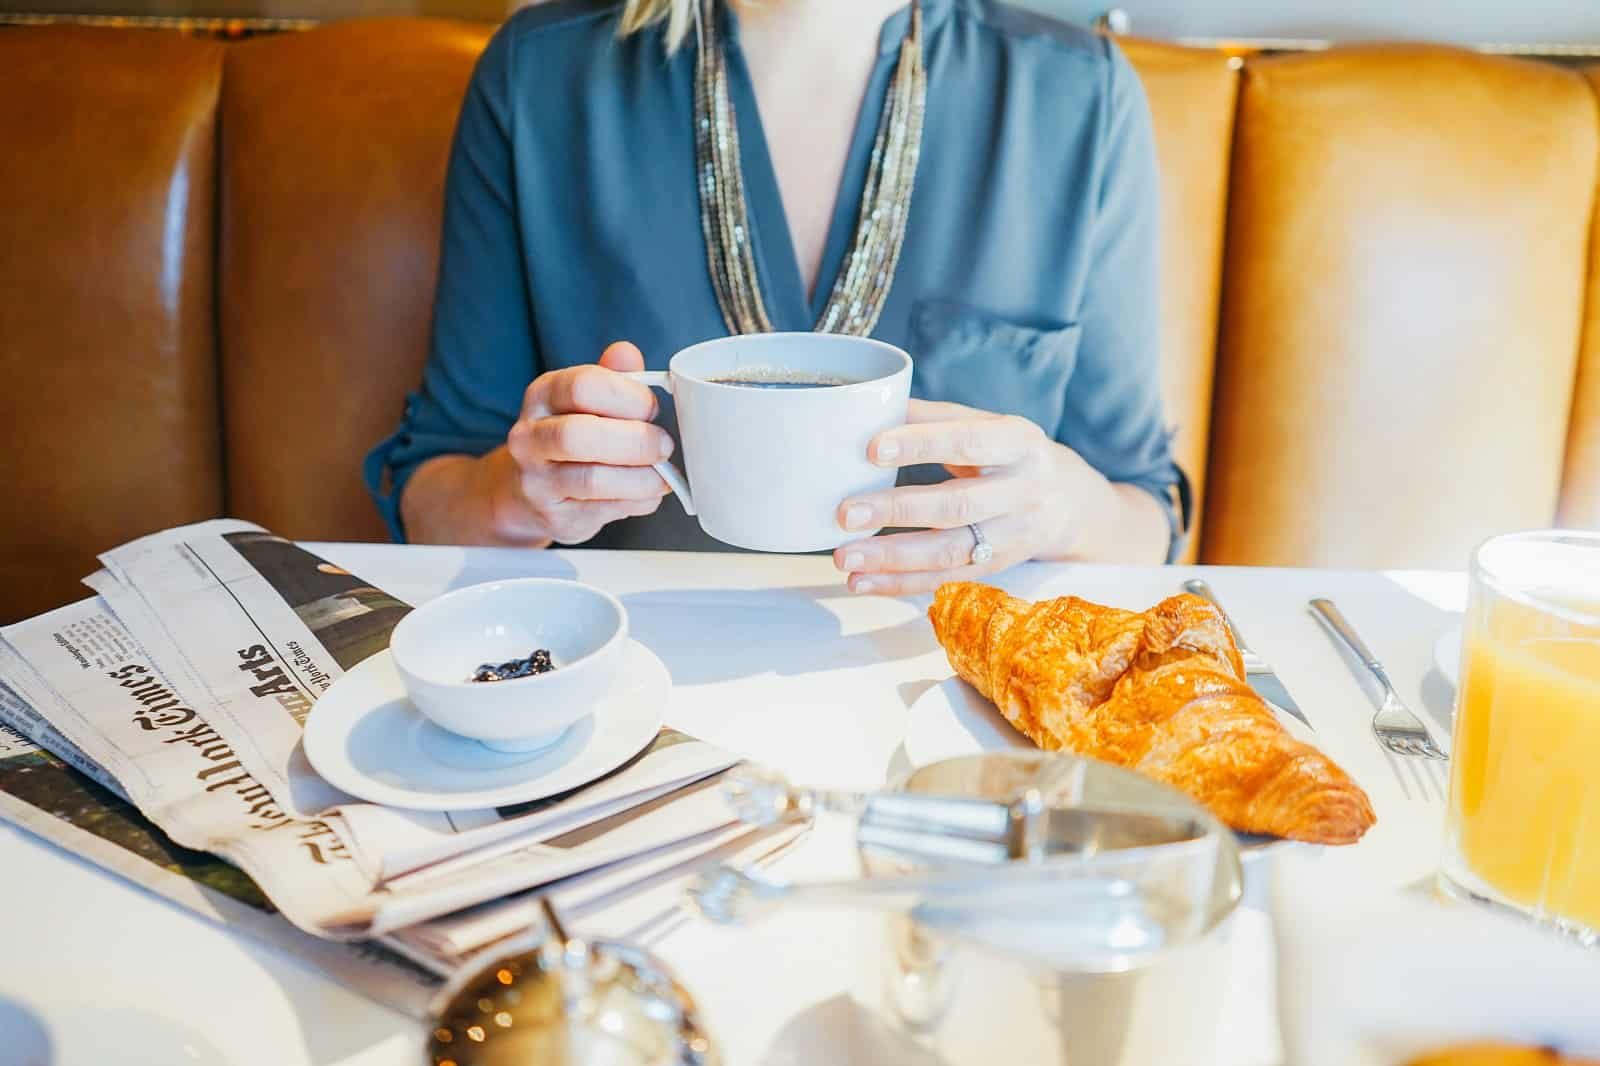 Closeup of a guest picking up a coffee cup, with a croissant on a plate in front. In this dining booth, another cup and saucer rests atop a folded newspaper.